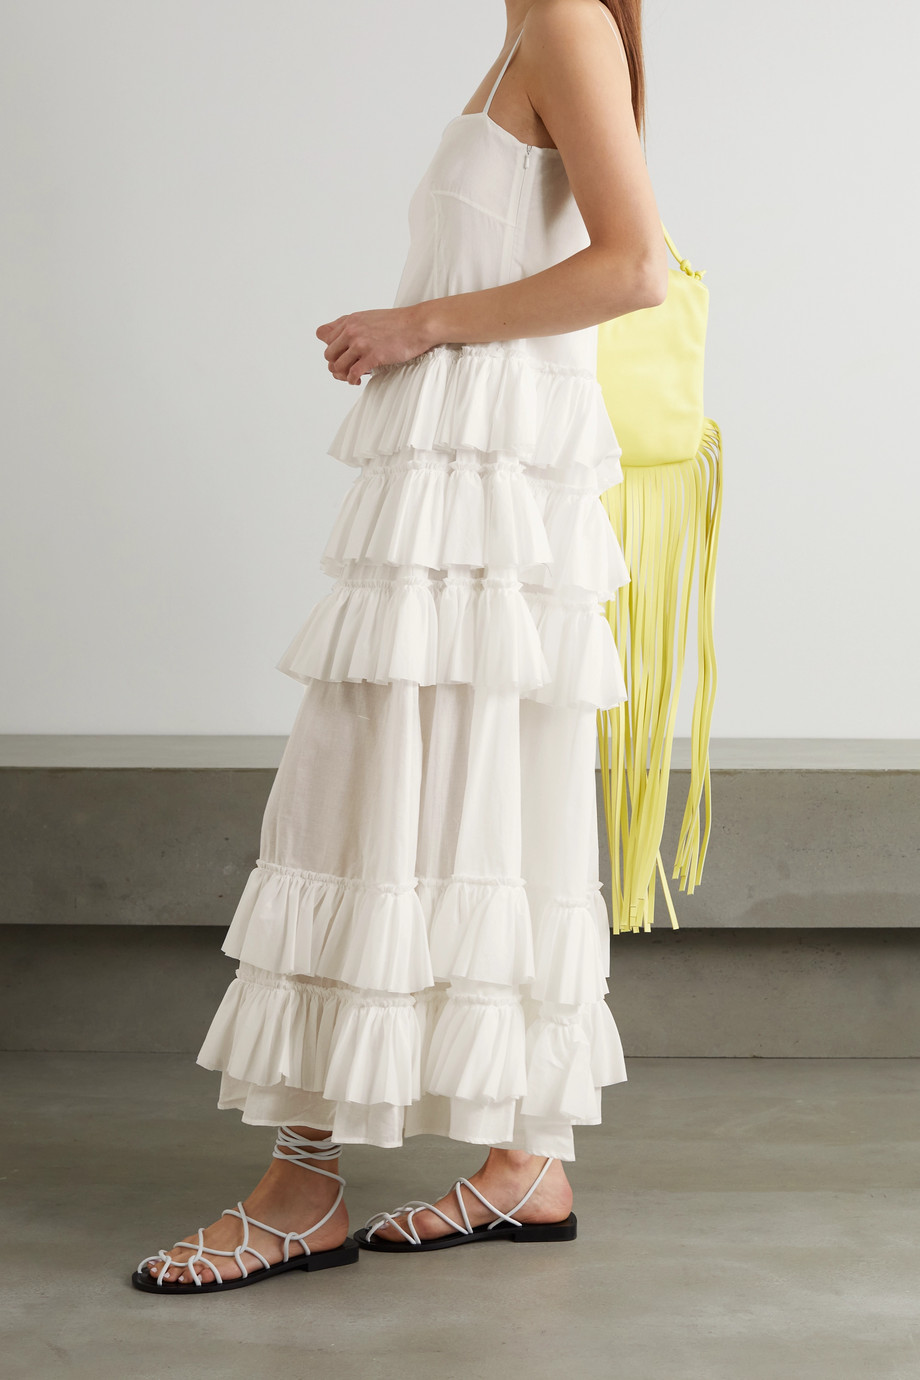 MOLLY GODDARD Wray ruffled tiered cotton-voile maxi dress